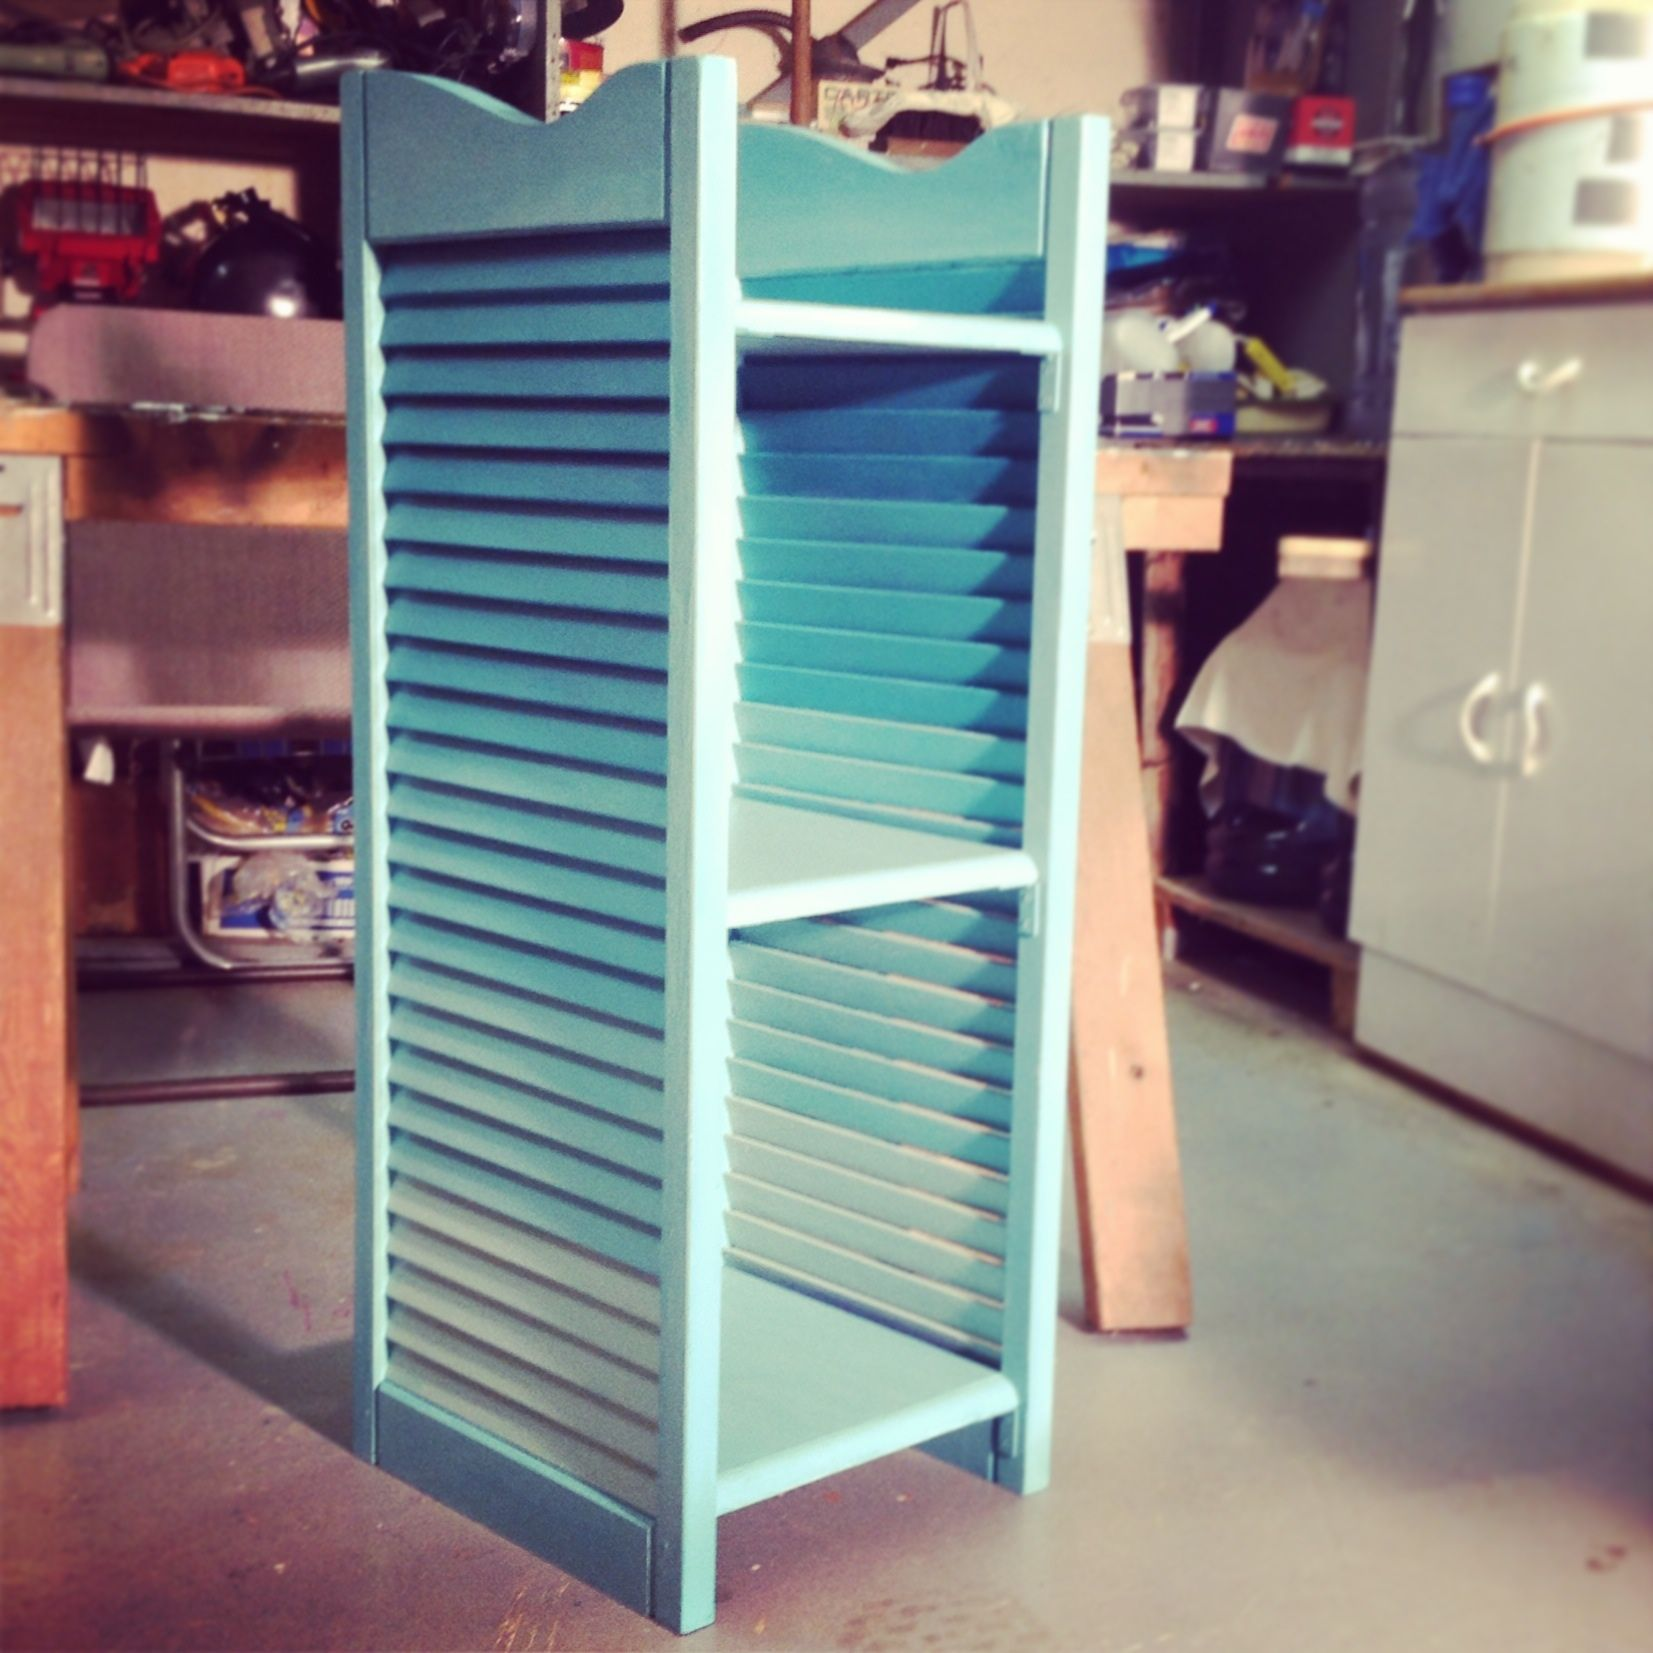 Teal Shutters: Teal Ombre Shelf Made Out Of Shutters!